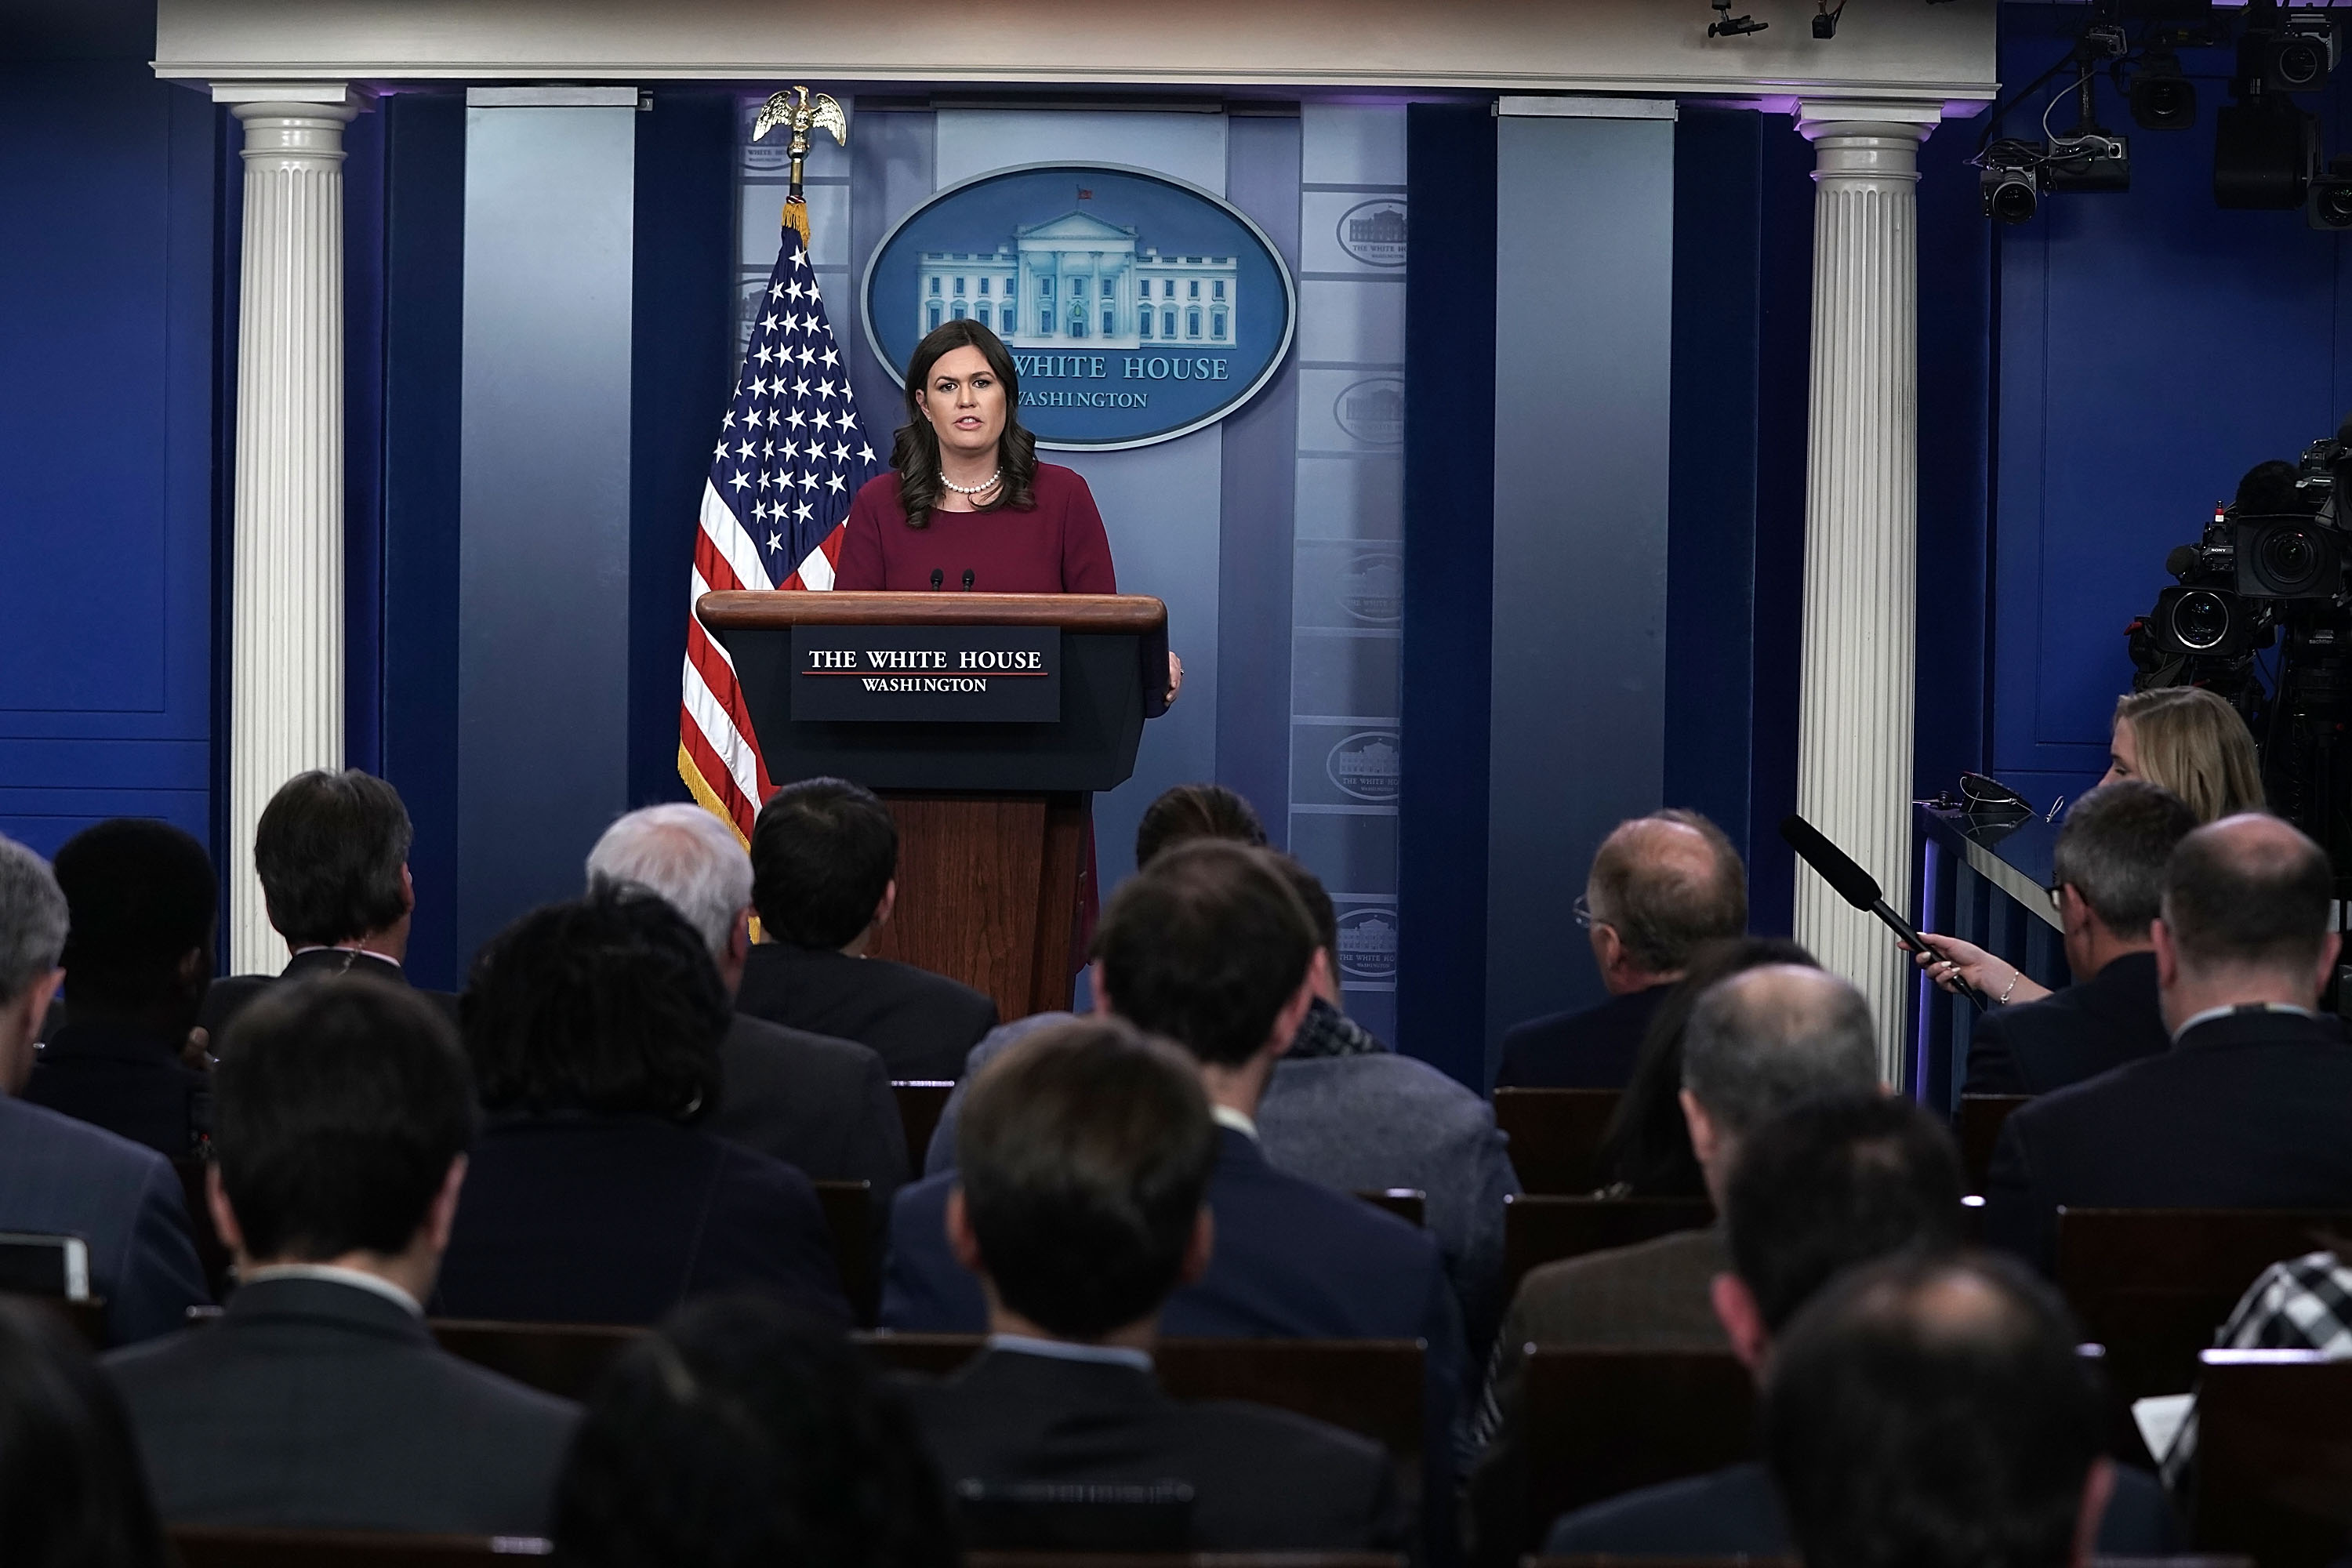 WASHINGTON, DC - FEBRUARY 13: White House Press Secretary Sarah Huckabee Sanders conducts a daily news briefing at the James Brady Press Briefing Room of the White House February 13, 2018 in Washington, DC. Sanders held her daily briefing to fill questions from members of the White House Press Corps. (Photo by Alex Wong/Getty Images)